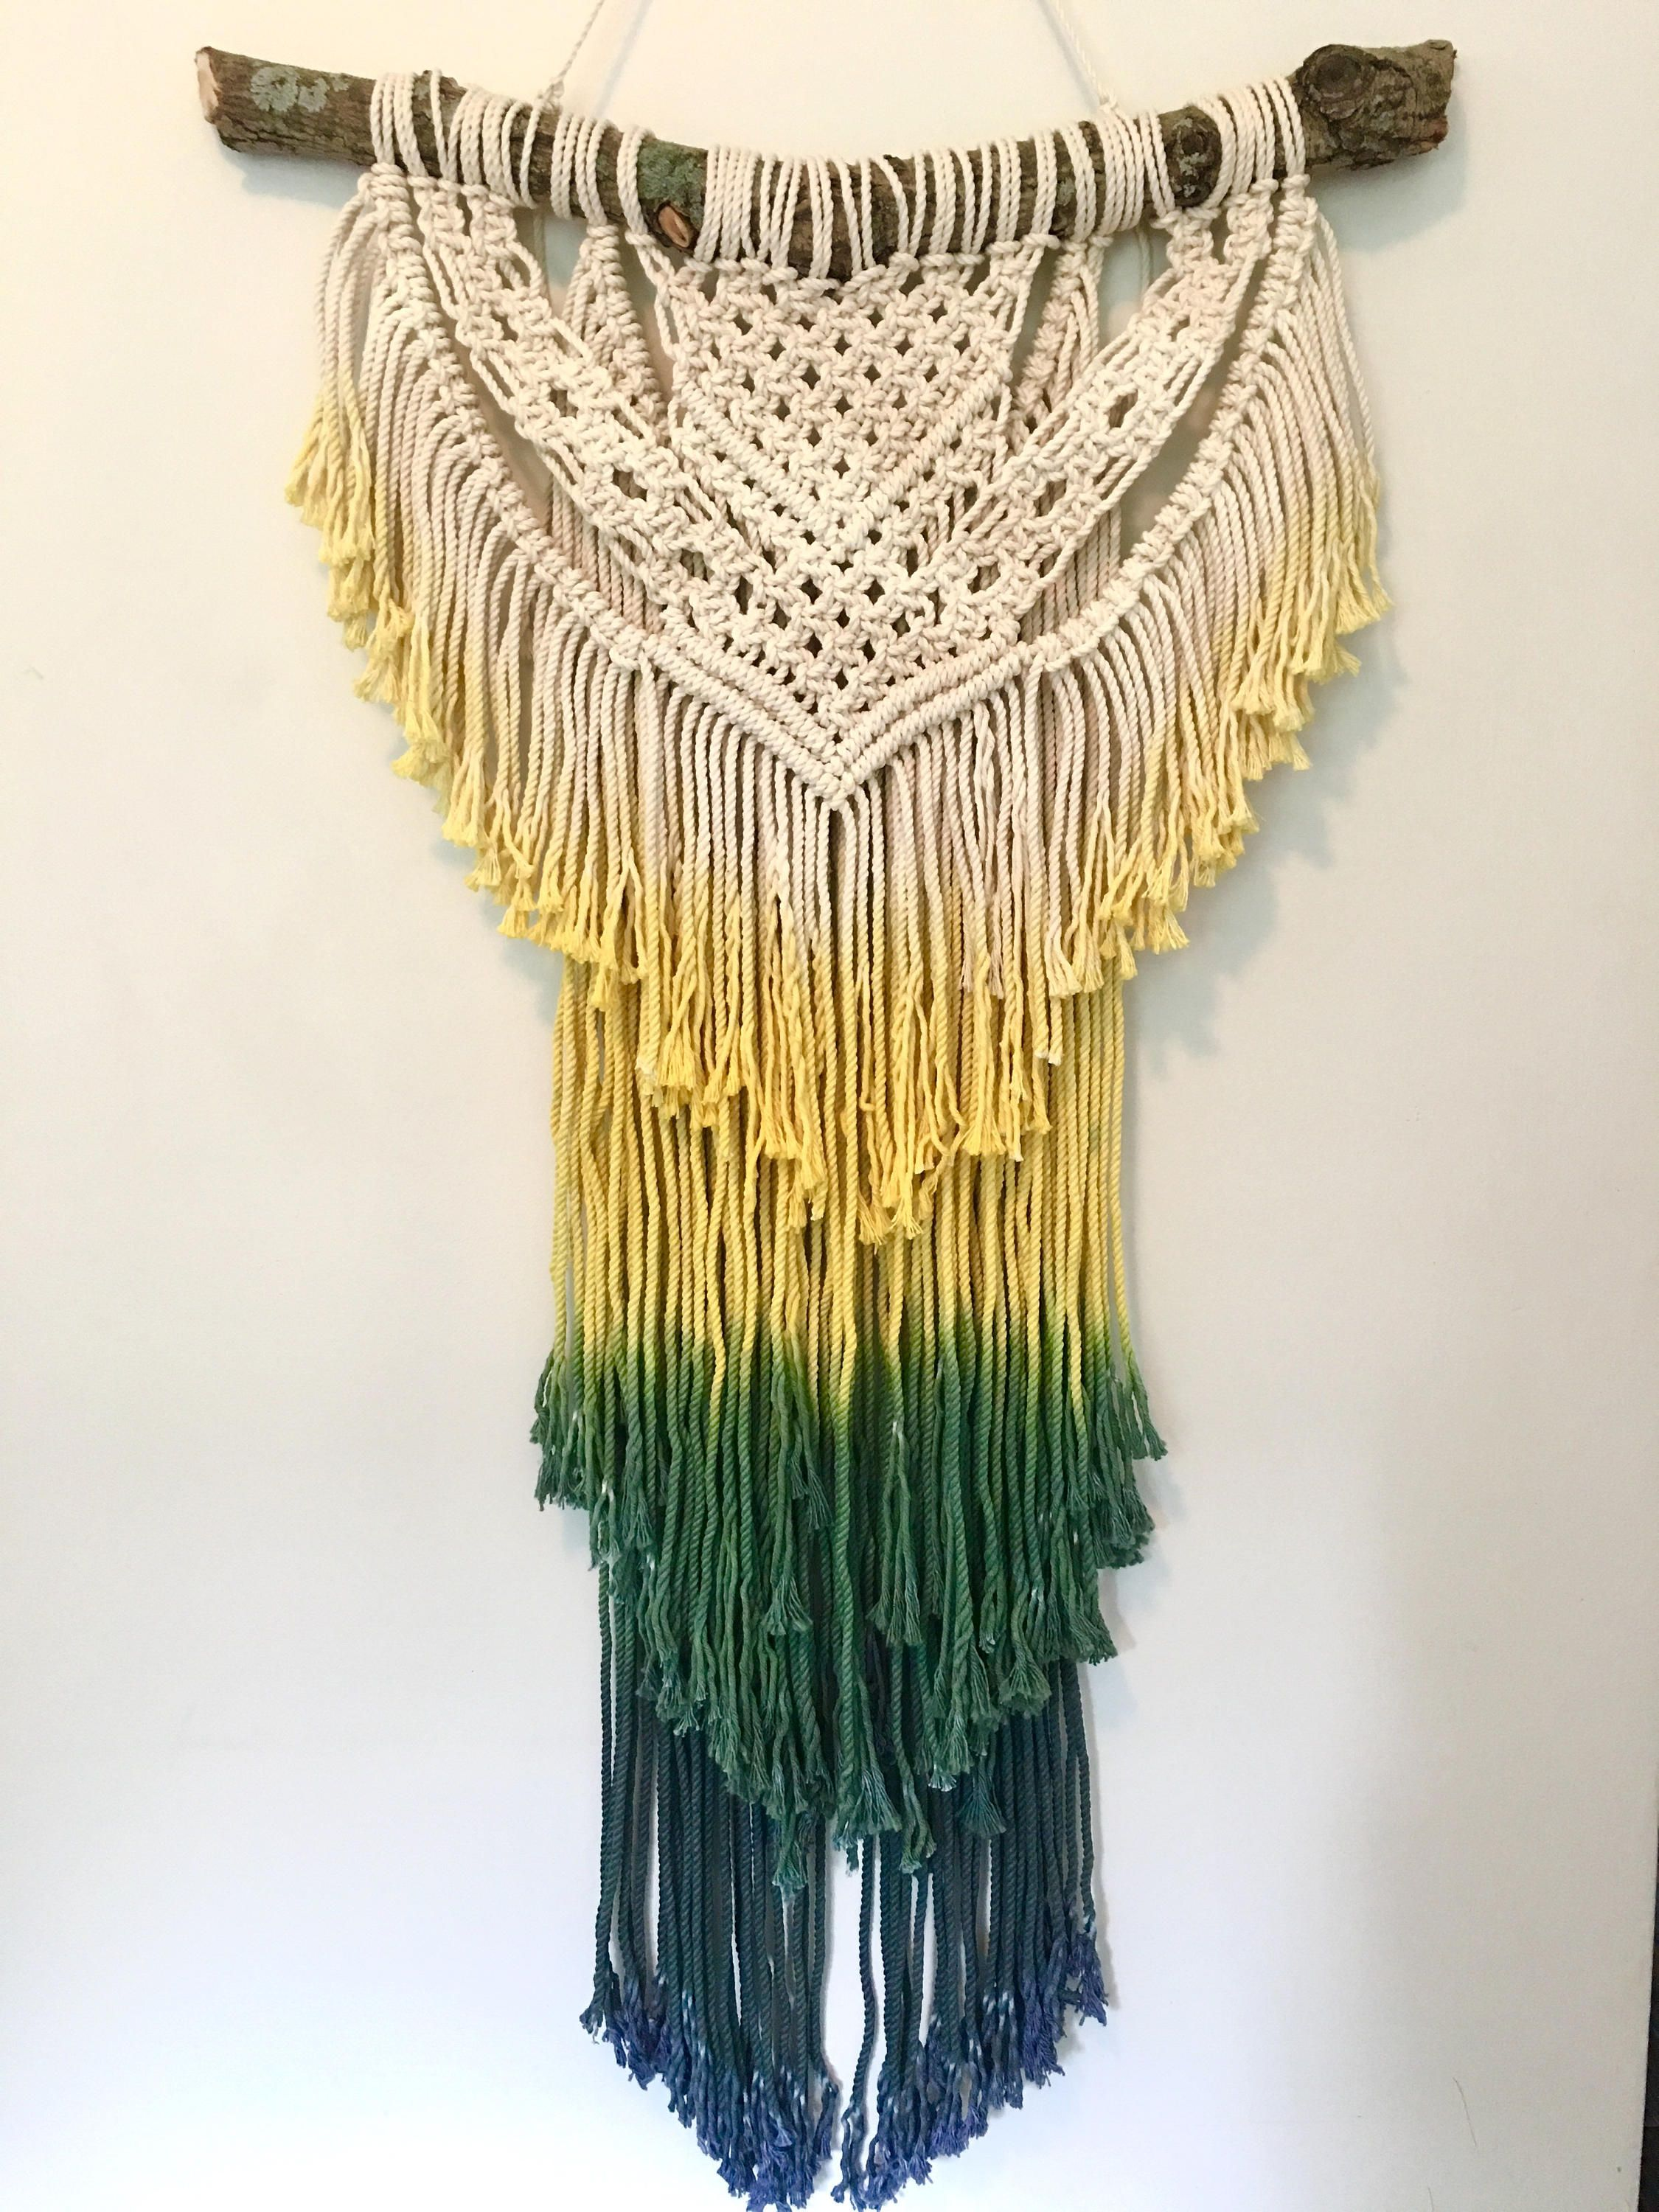 Wall Hanging Macrame Wall Hanging Boho Decor Jungalow Hippie Decor ...